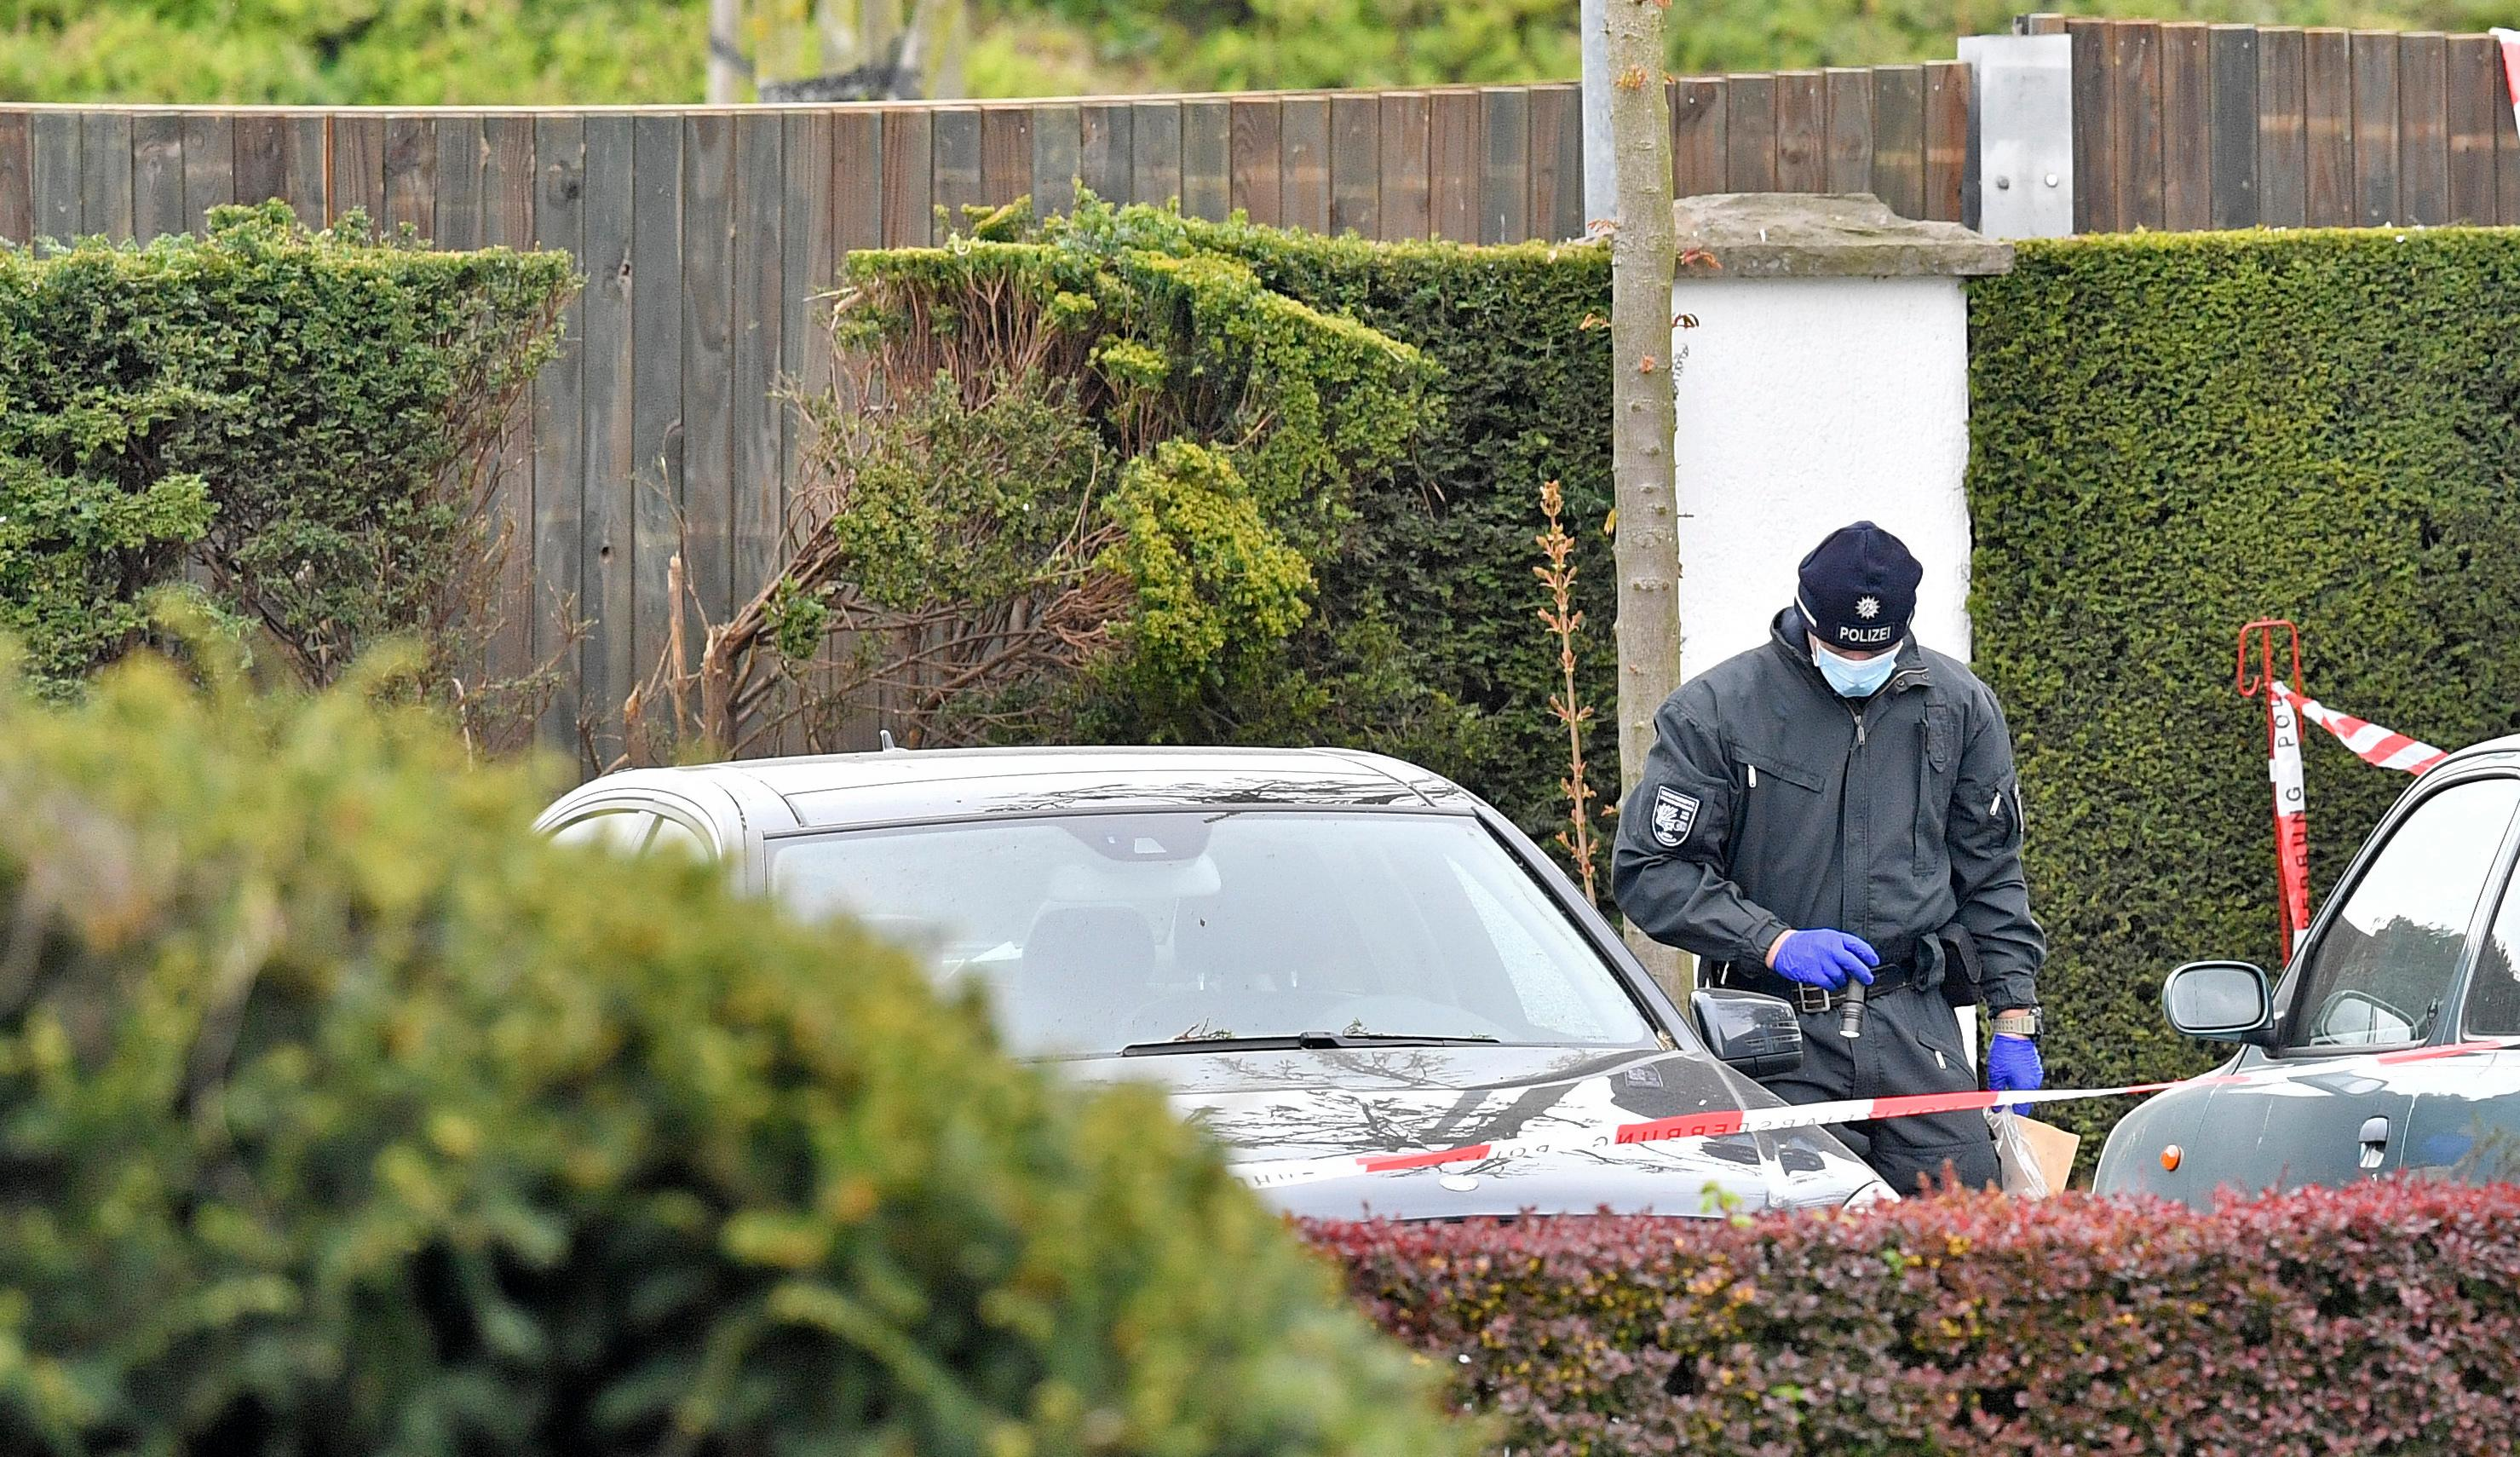 FILE - In this April 12, 2017 file photo police investigators search for evidence at the hedge near the team hotel of Bundesliga soccer club Borussia Dortmund in Dortmund, Germany, the day after the team bus was damaged in an explosion which injured a player and a police officer. (AP Photo/Martin Meissner, file)